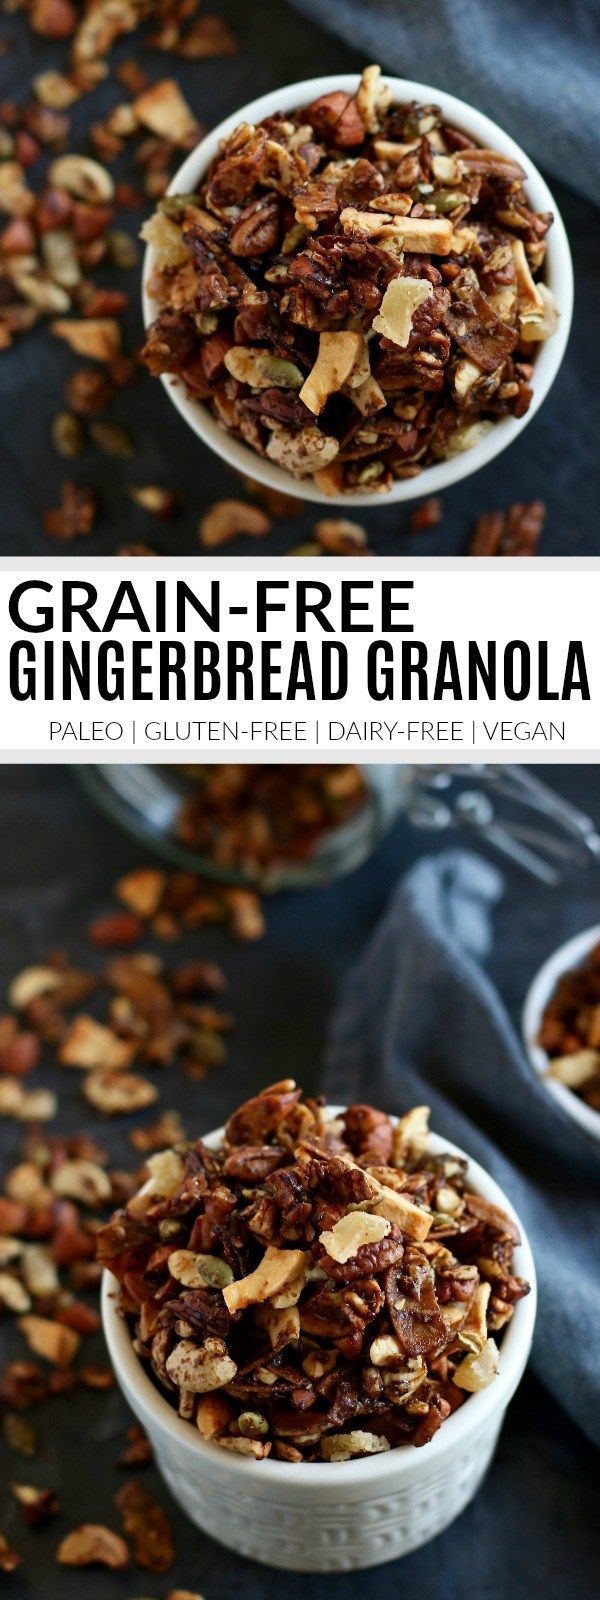 Grain-free Gingerbread Granola | https://therealfoodrds.com/grain-free-gingerbread-granola/